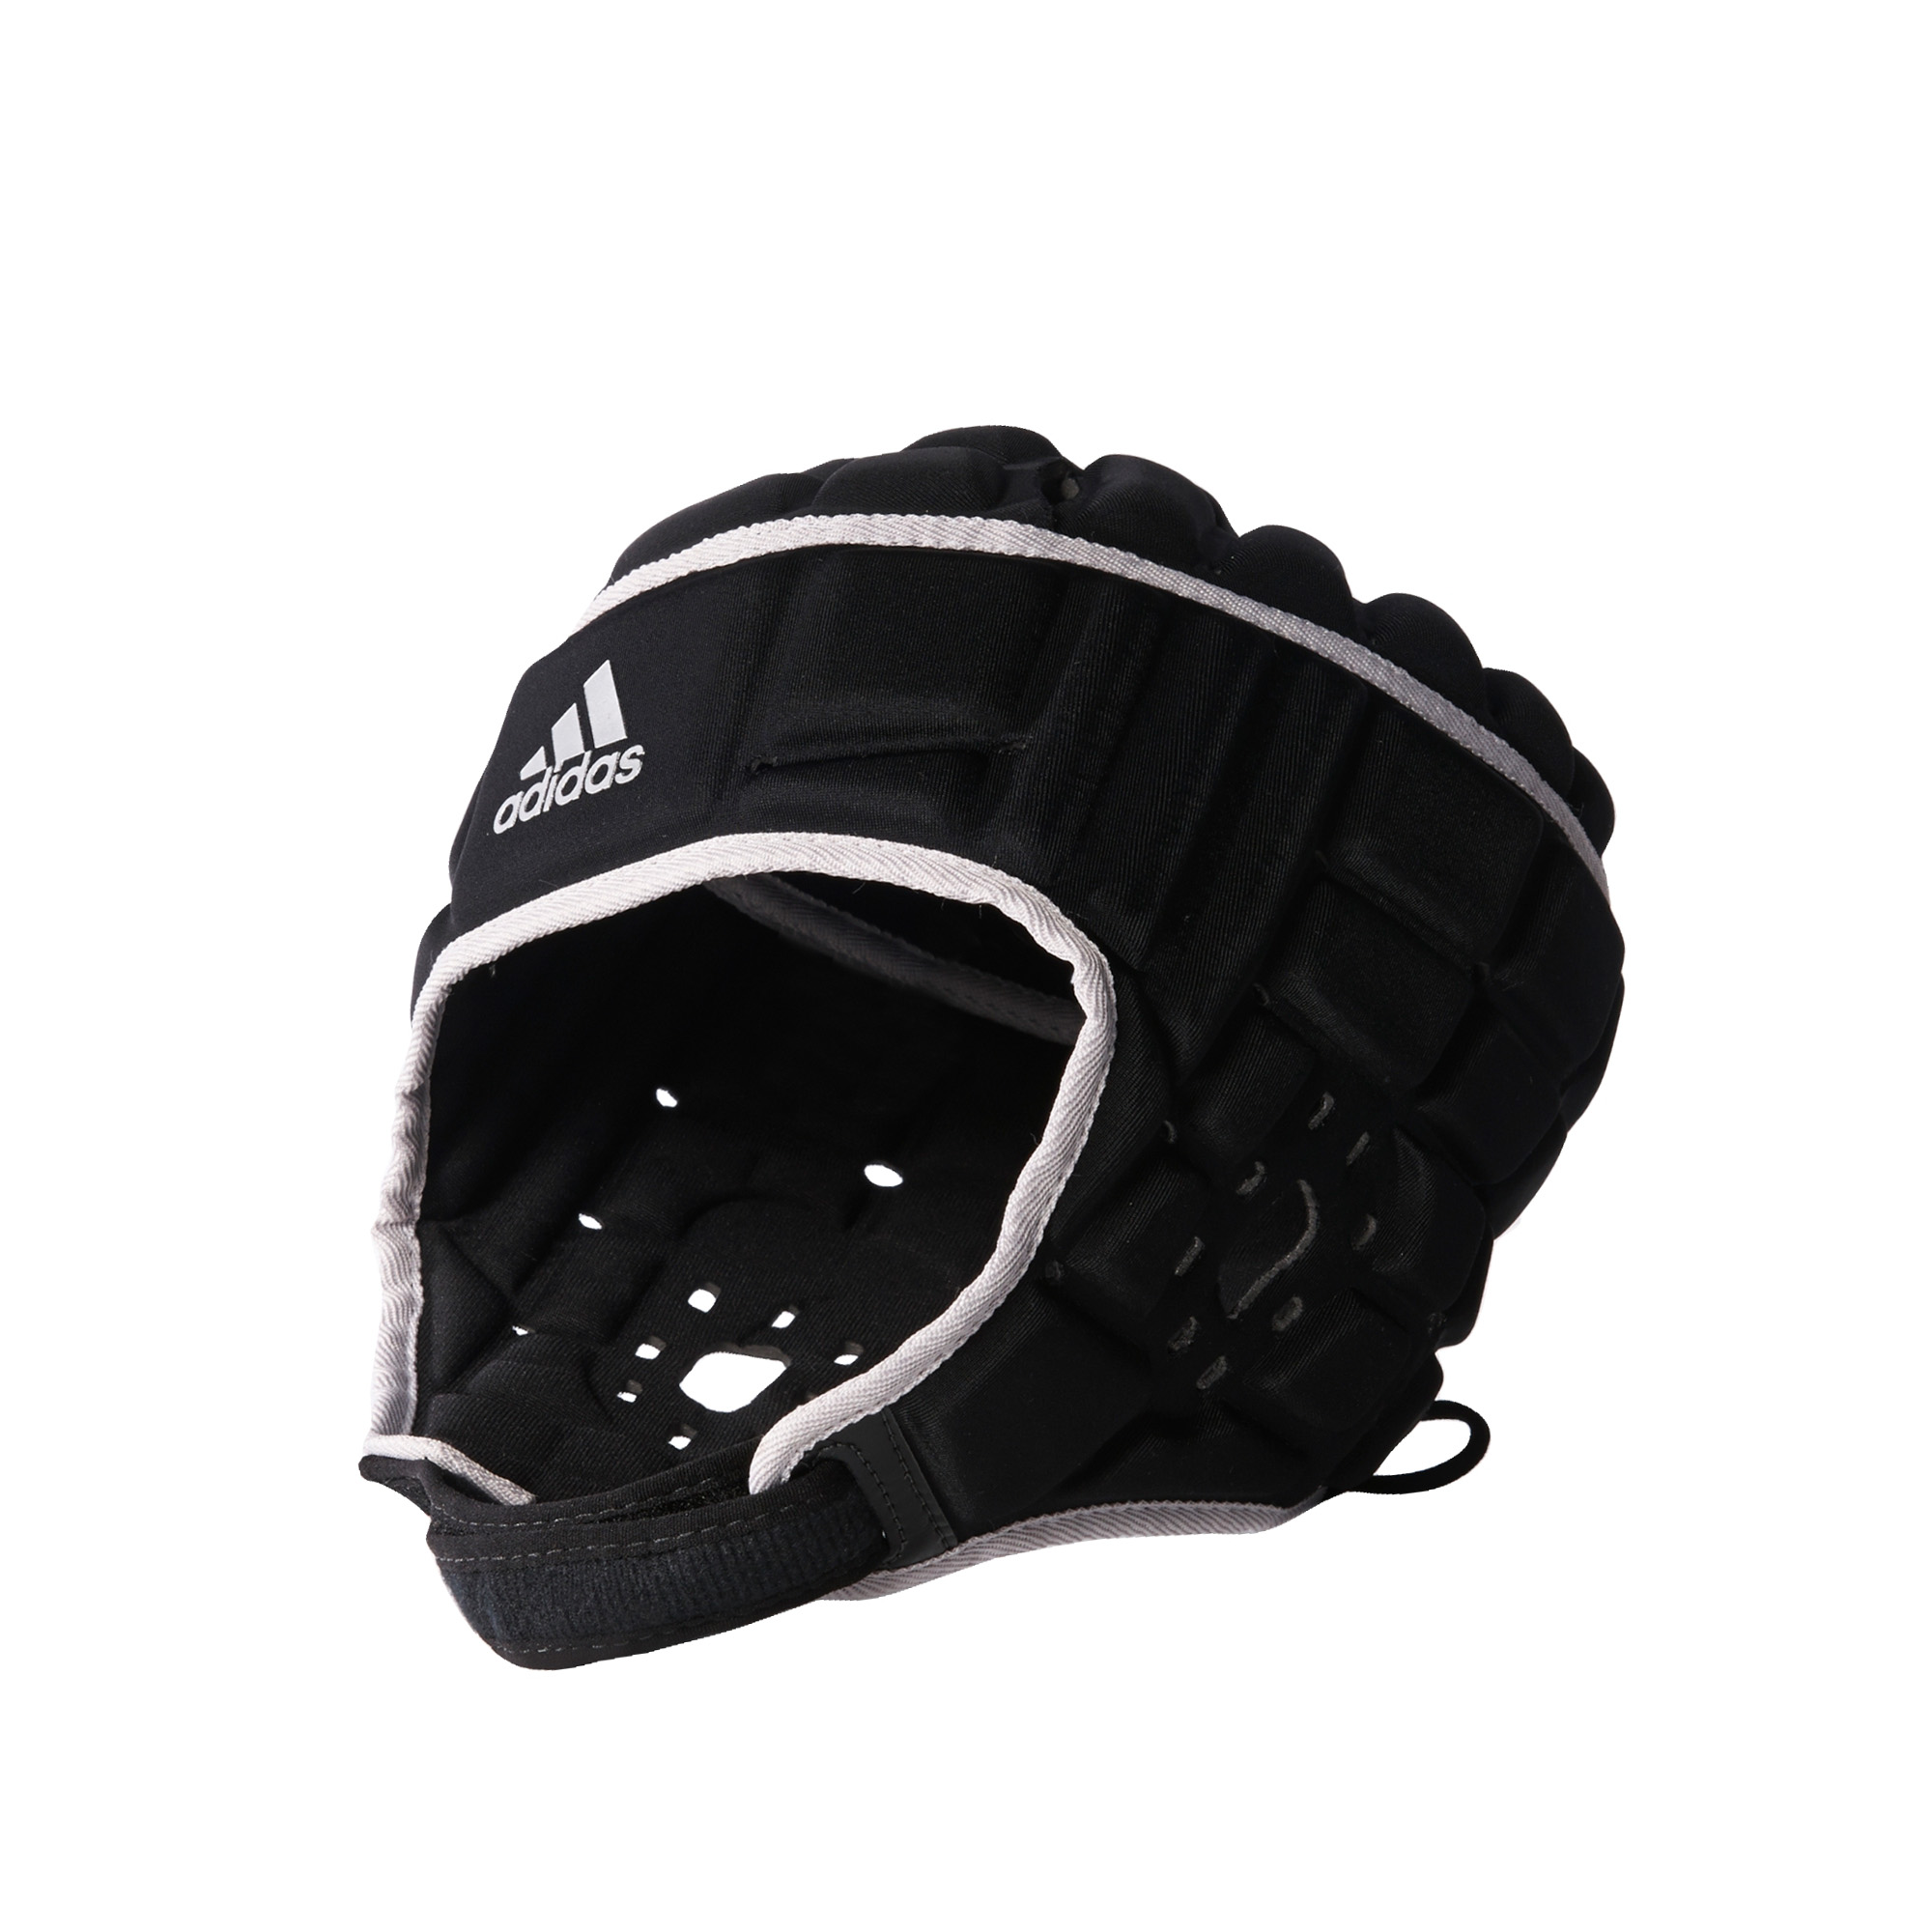 Details about adidas Rugby Headguard Scrum Cap Head Protection Black 286c133e526